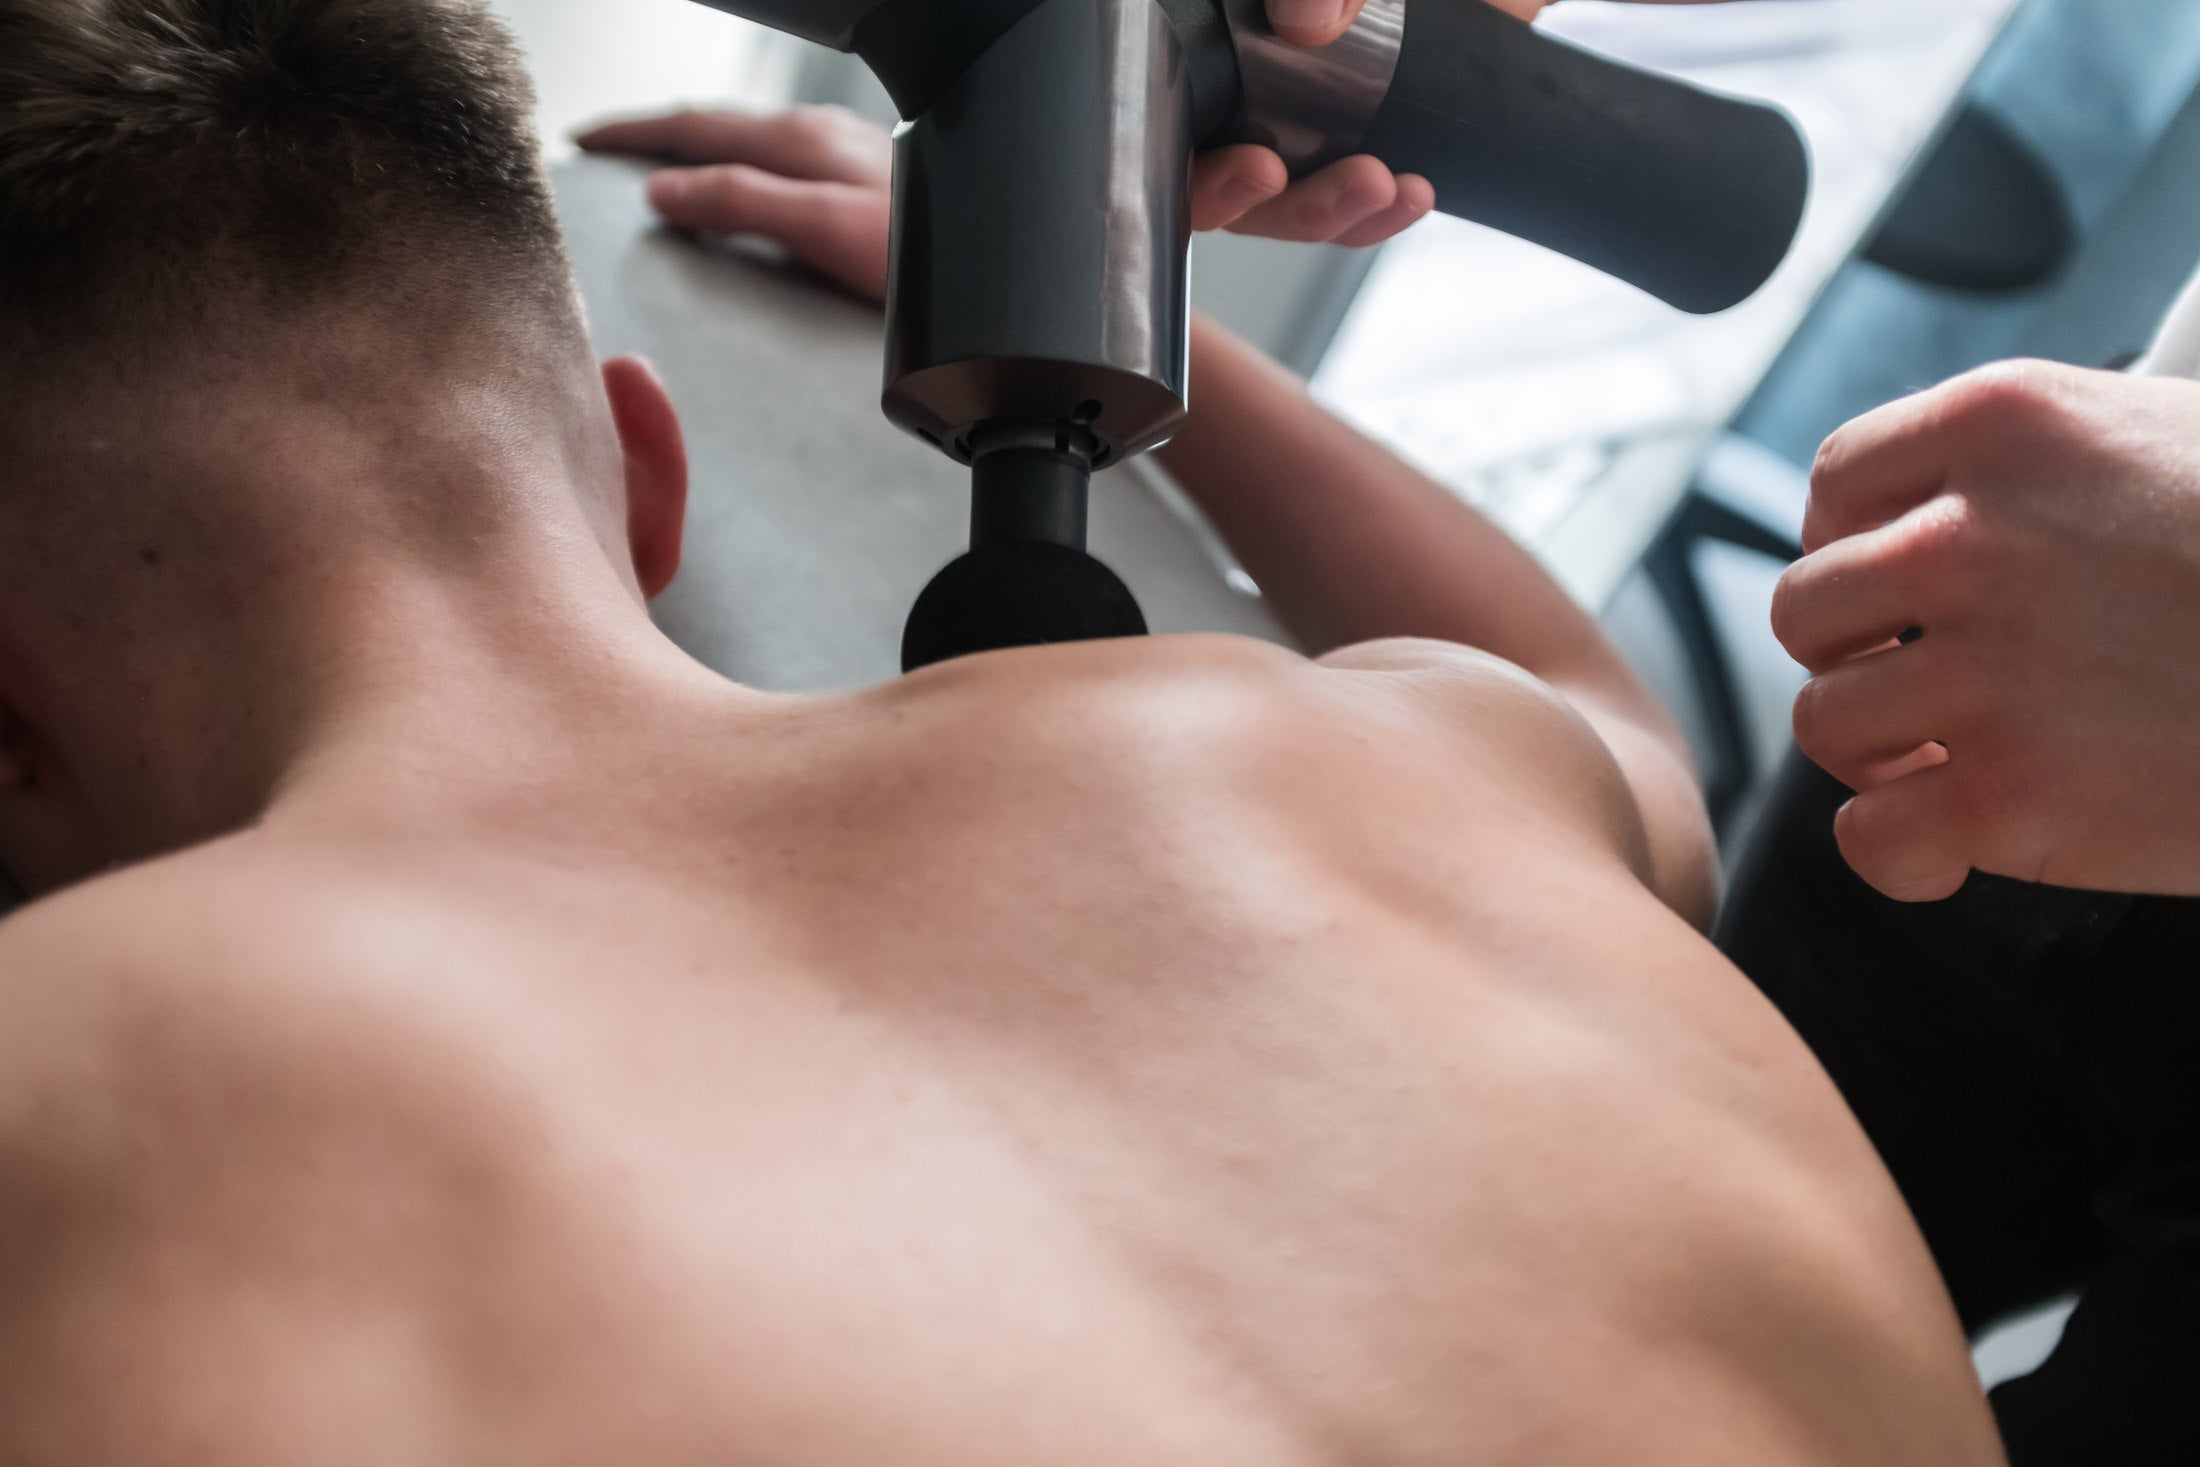 Massage therapy using a massage gun for sore back muscles